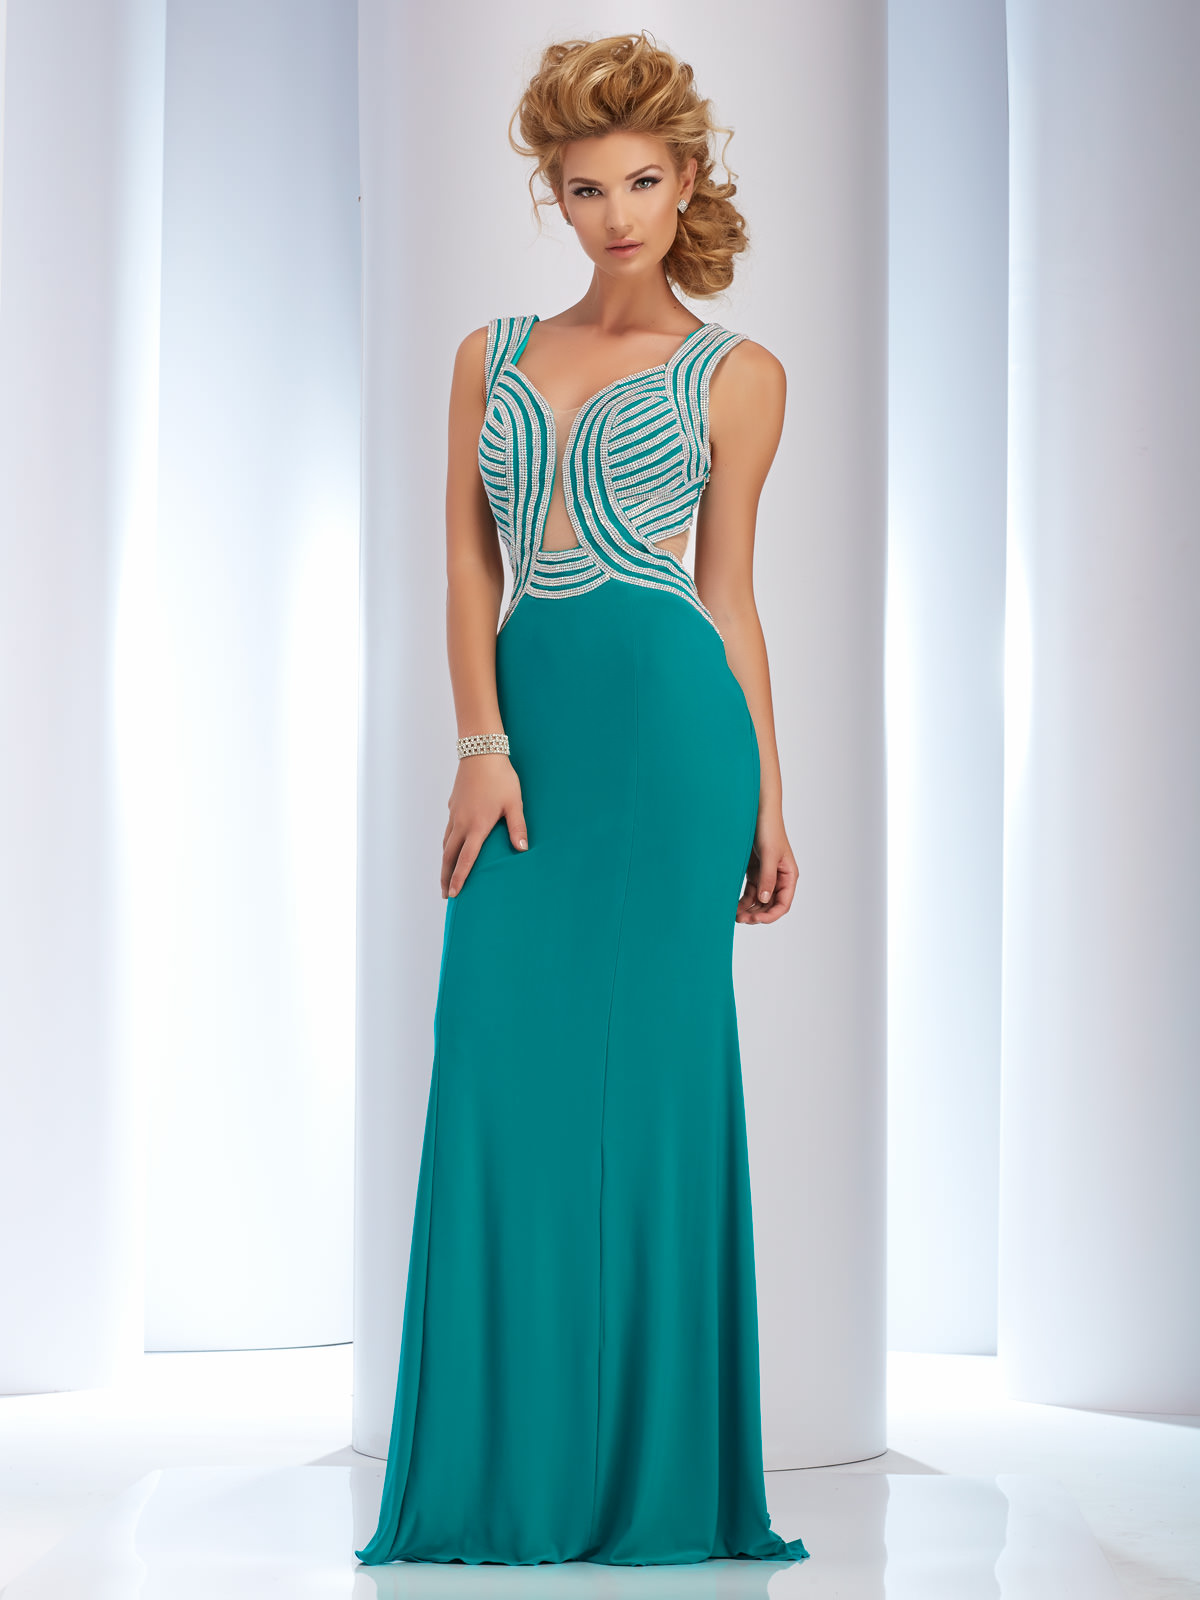 Clarisse 2805 Prom Dress | Promgirl.net